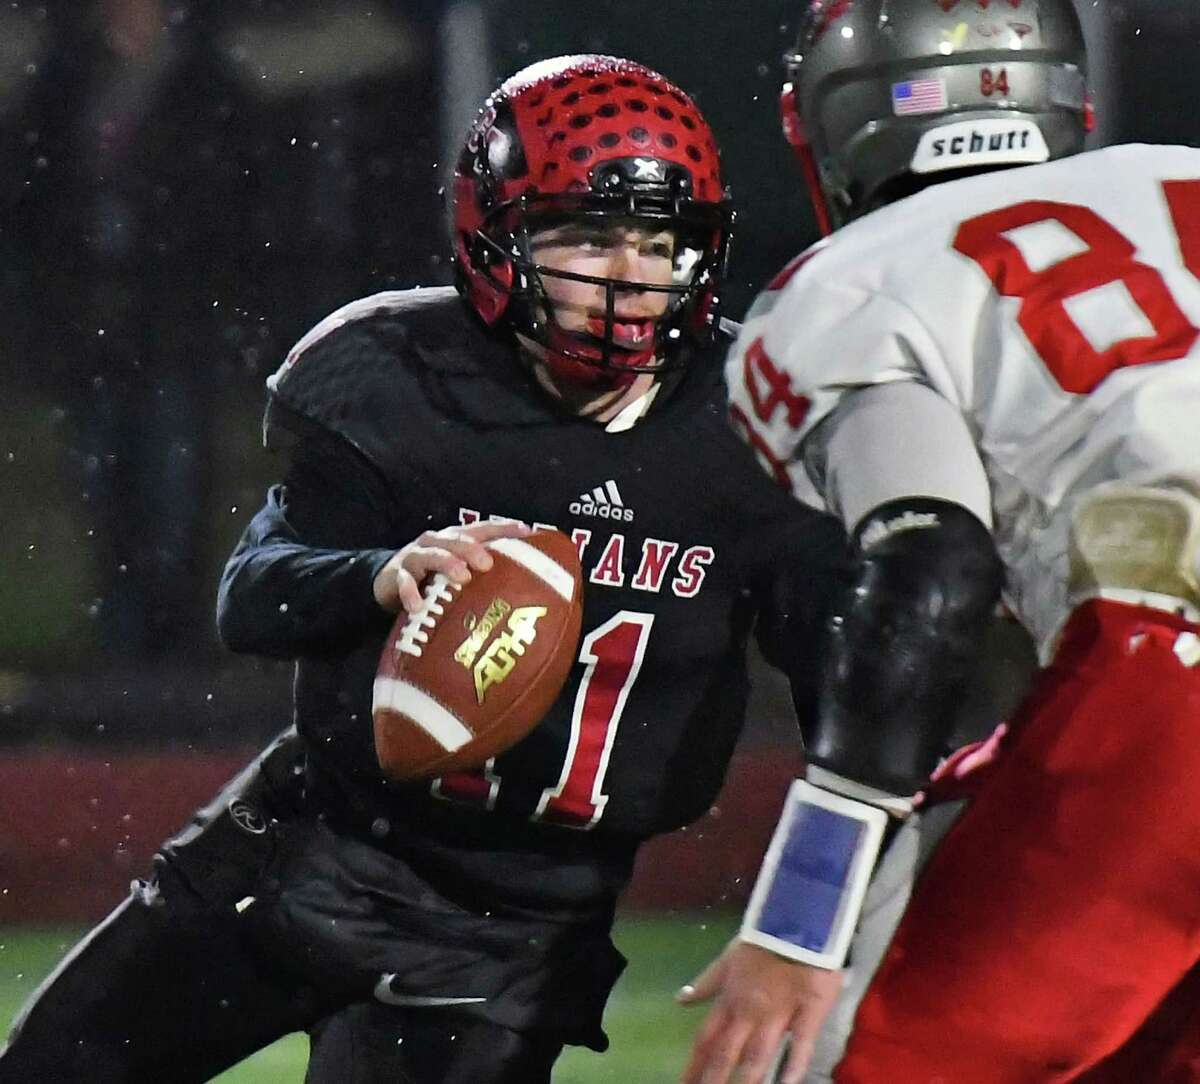 Glens Falls' QB Joseph Girard III scrambles before getting off a pass during their game against Beekmantown Friday Nov. 9, 2018 in Clifton Park, NY. (John Carl D'Annibale/Times Union)